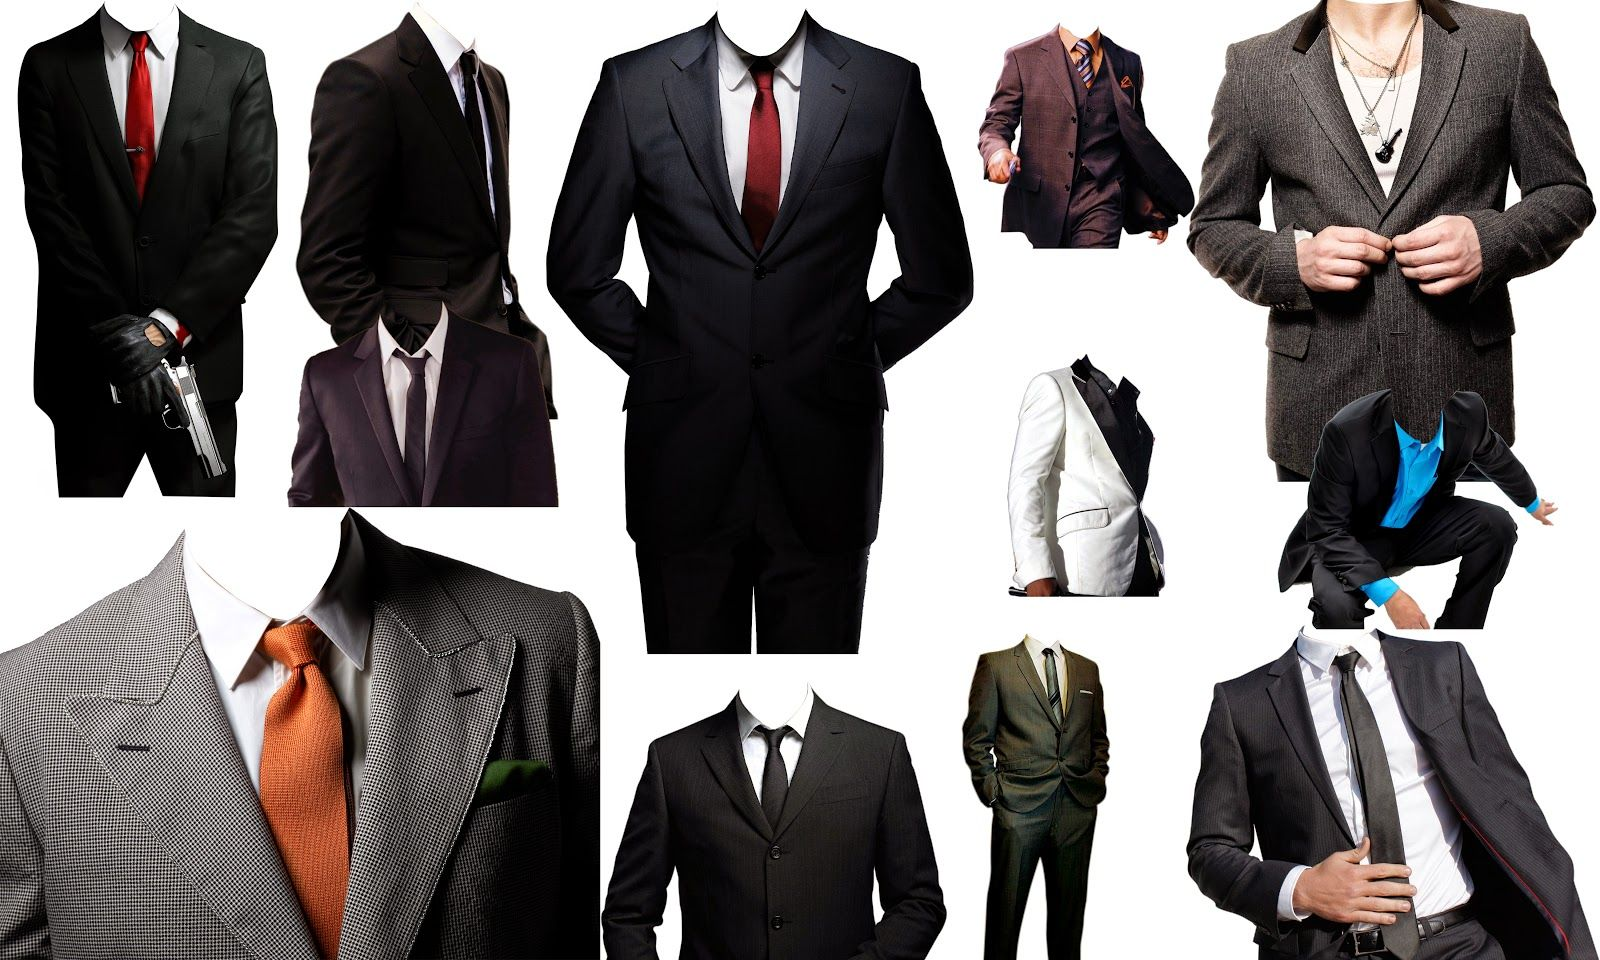 Attire for manufacturing clipart clipart images gallery for.